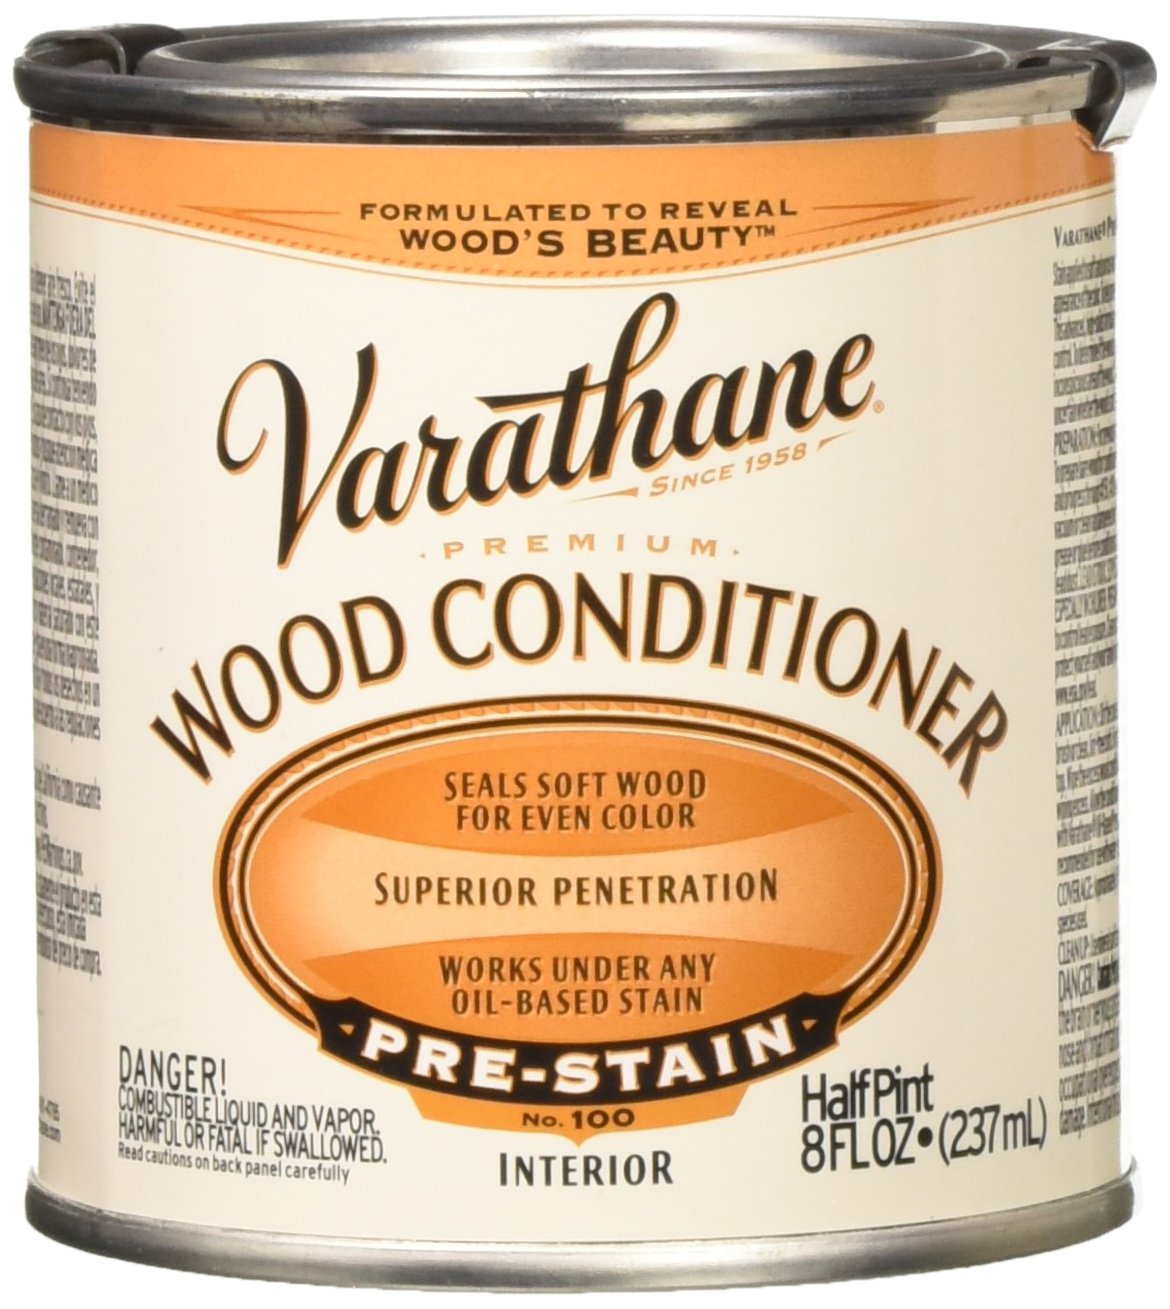 RUST-OLEUM 211776 Oil-Based Wood Conditioner, 1/2-Pint, Clear